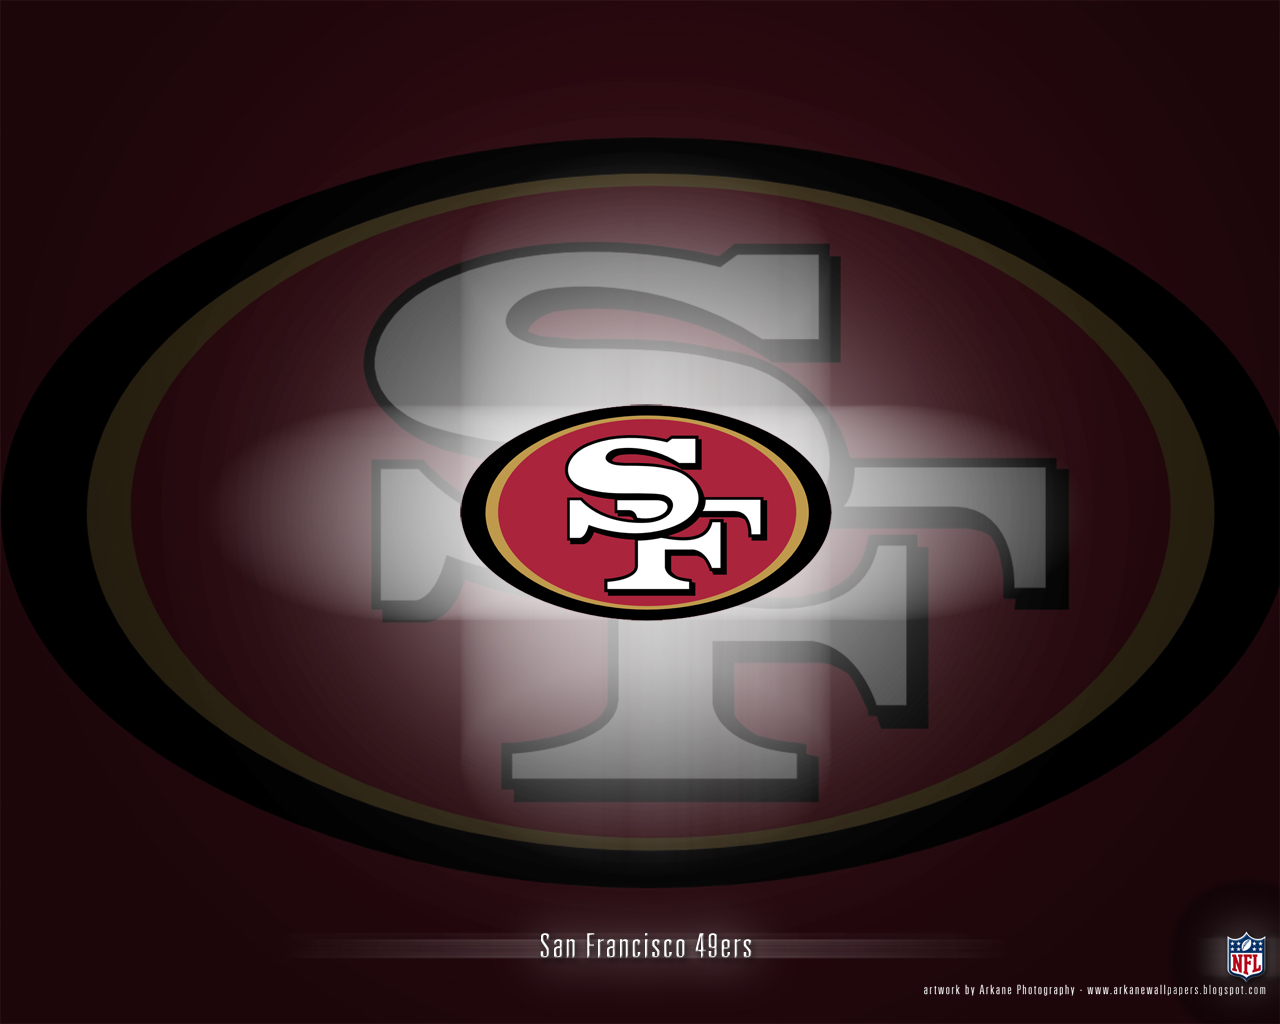 49ers wallpapers HD| HD Wallpapers ,Backgrounds ,Photos ,Pictures, Image ,PC